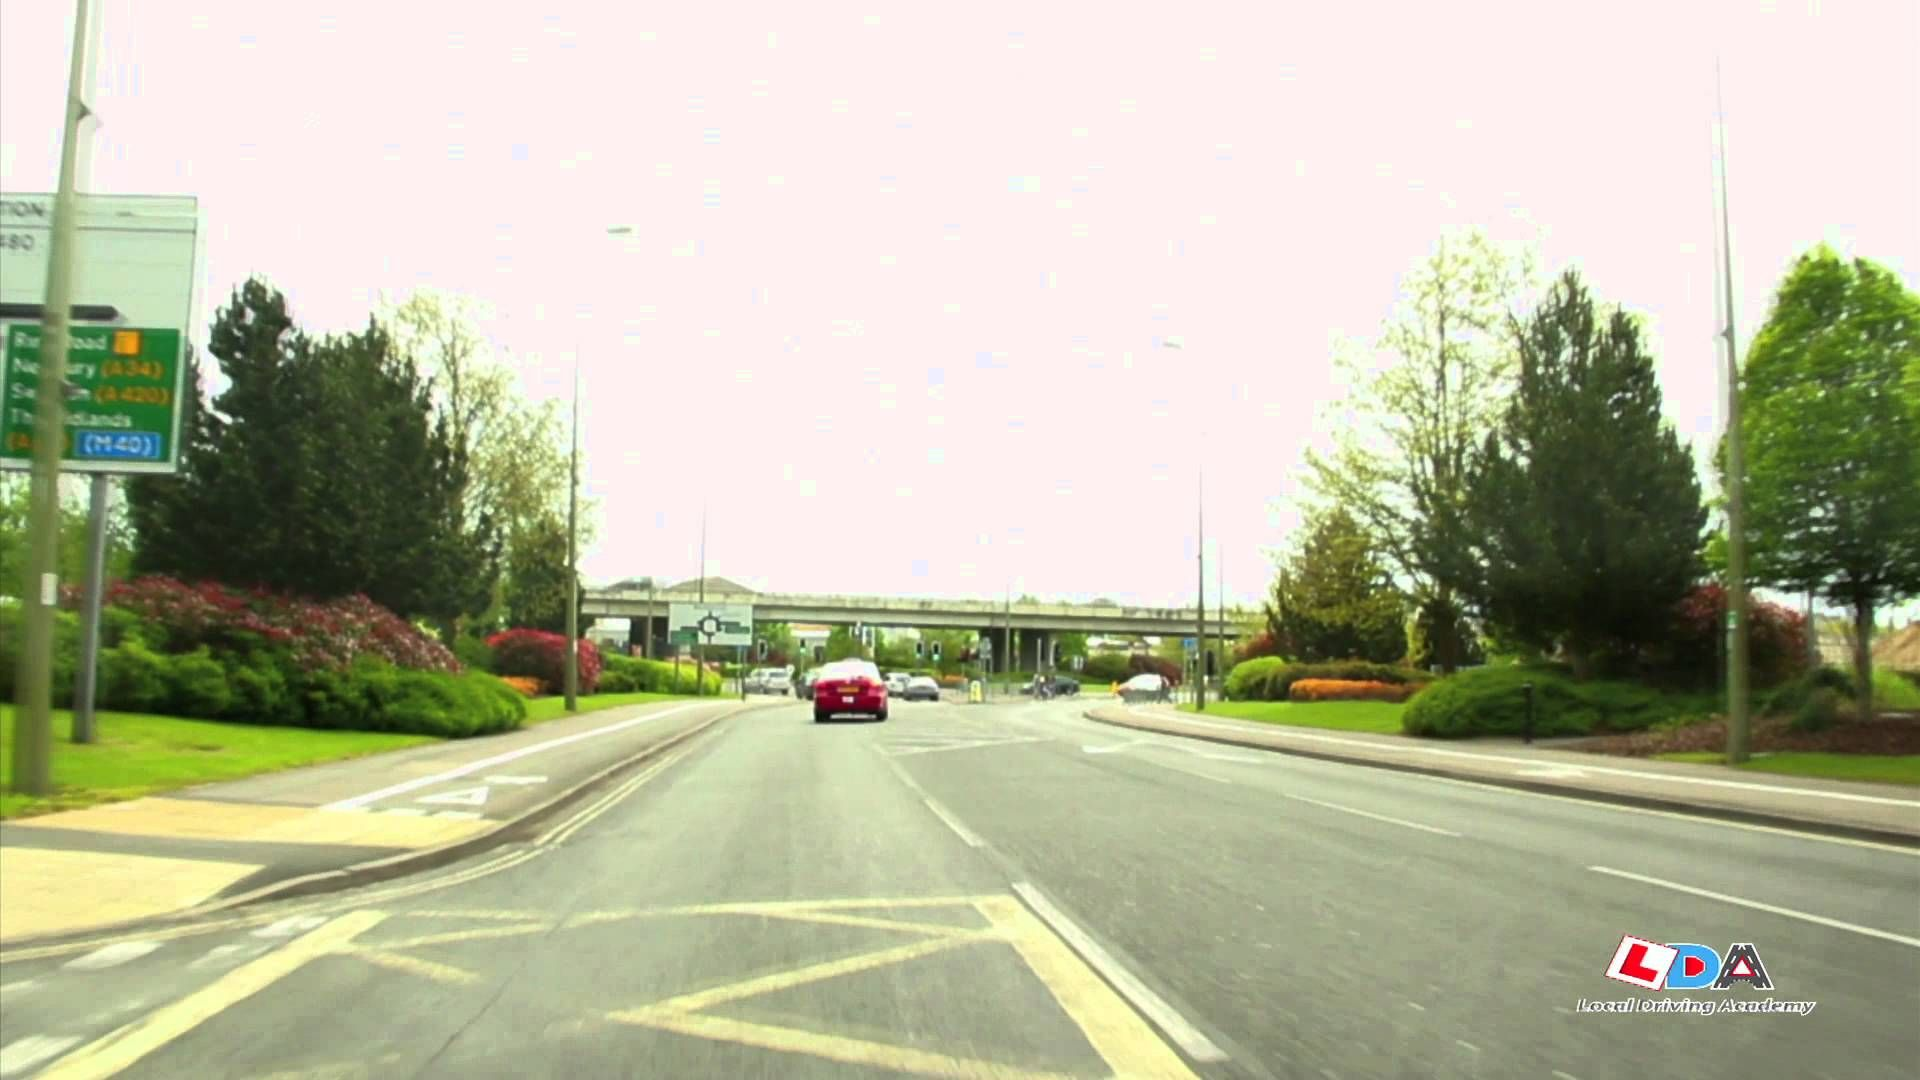 Roundabouts are everywhere and whether you like it or not